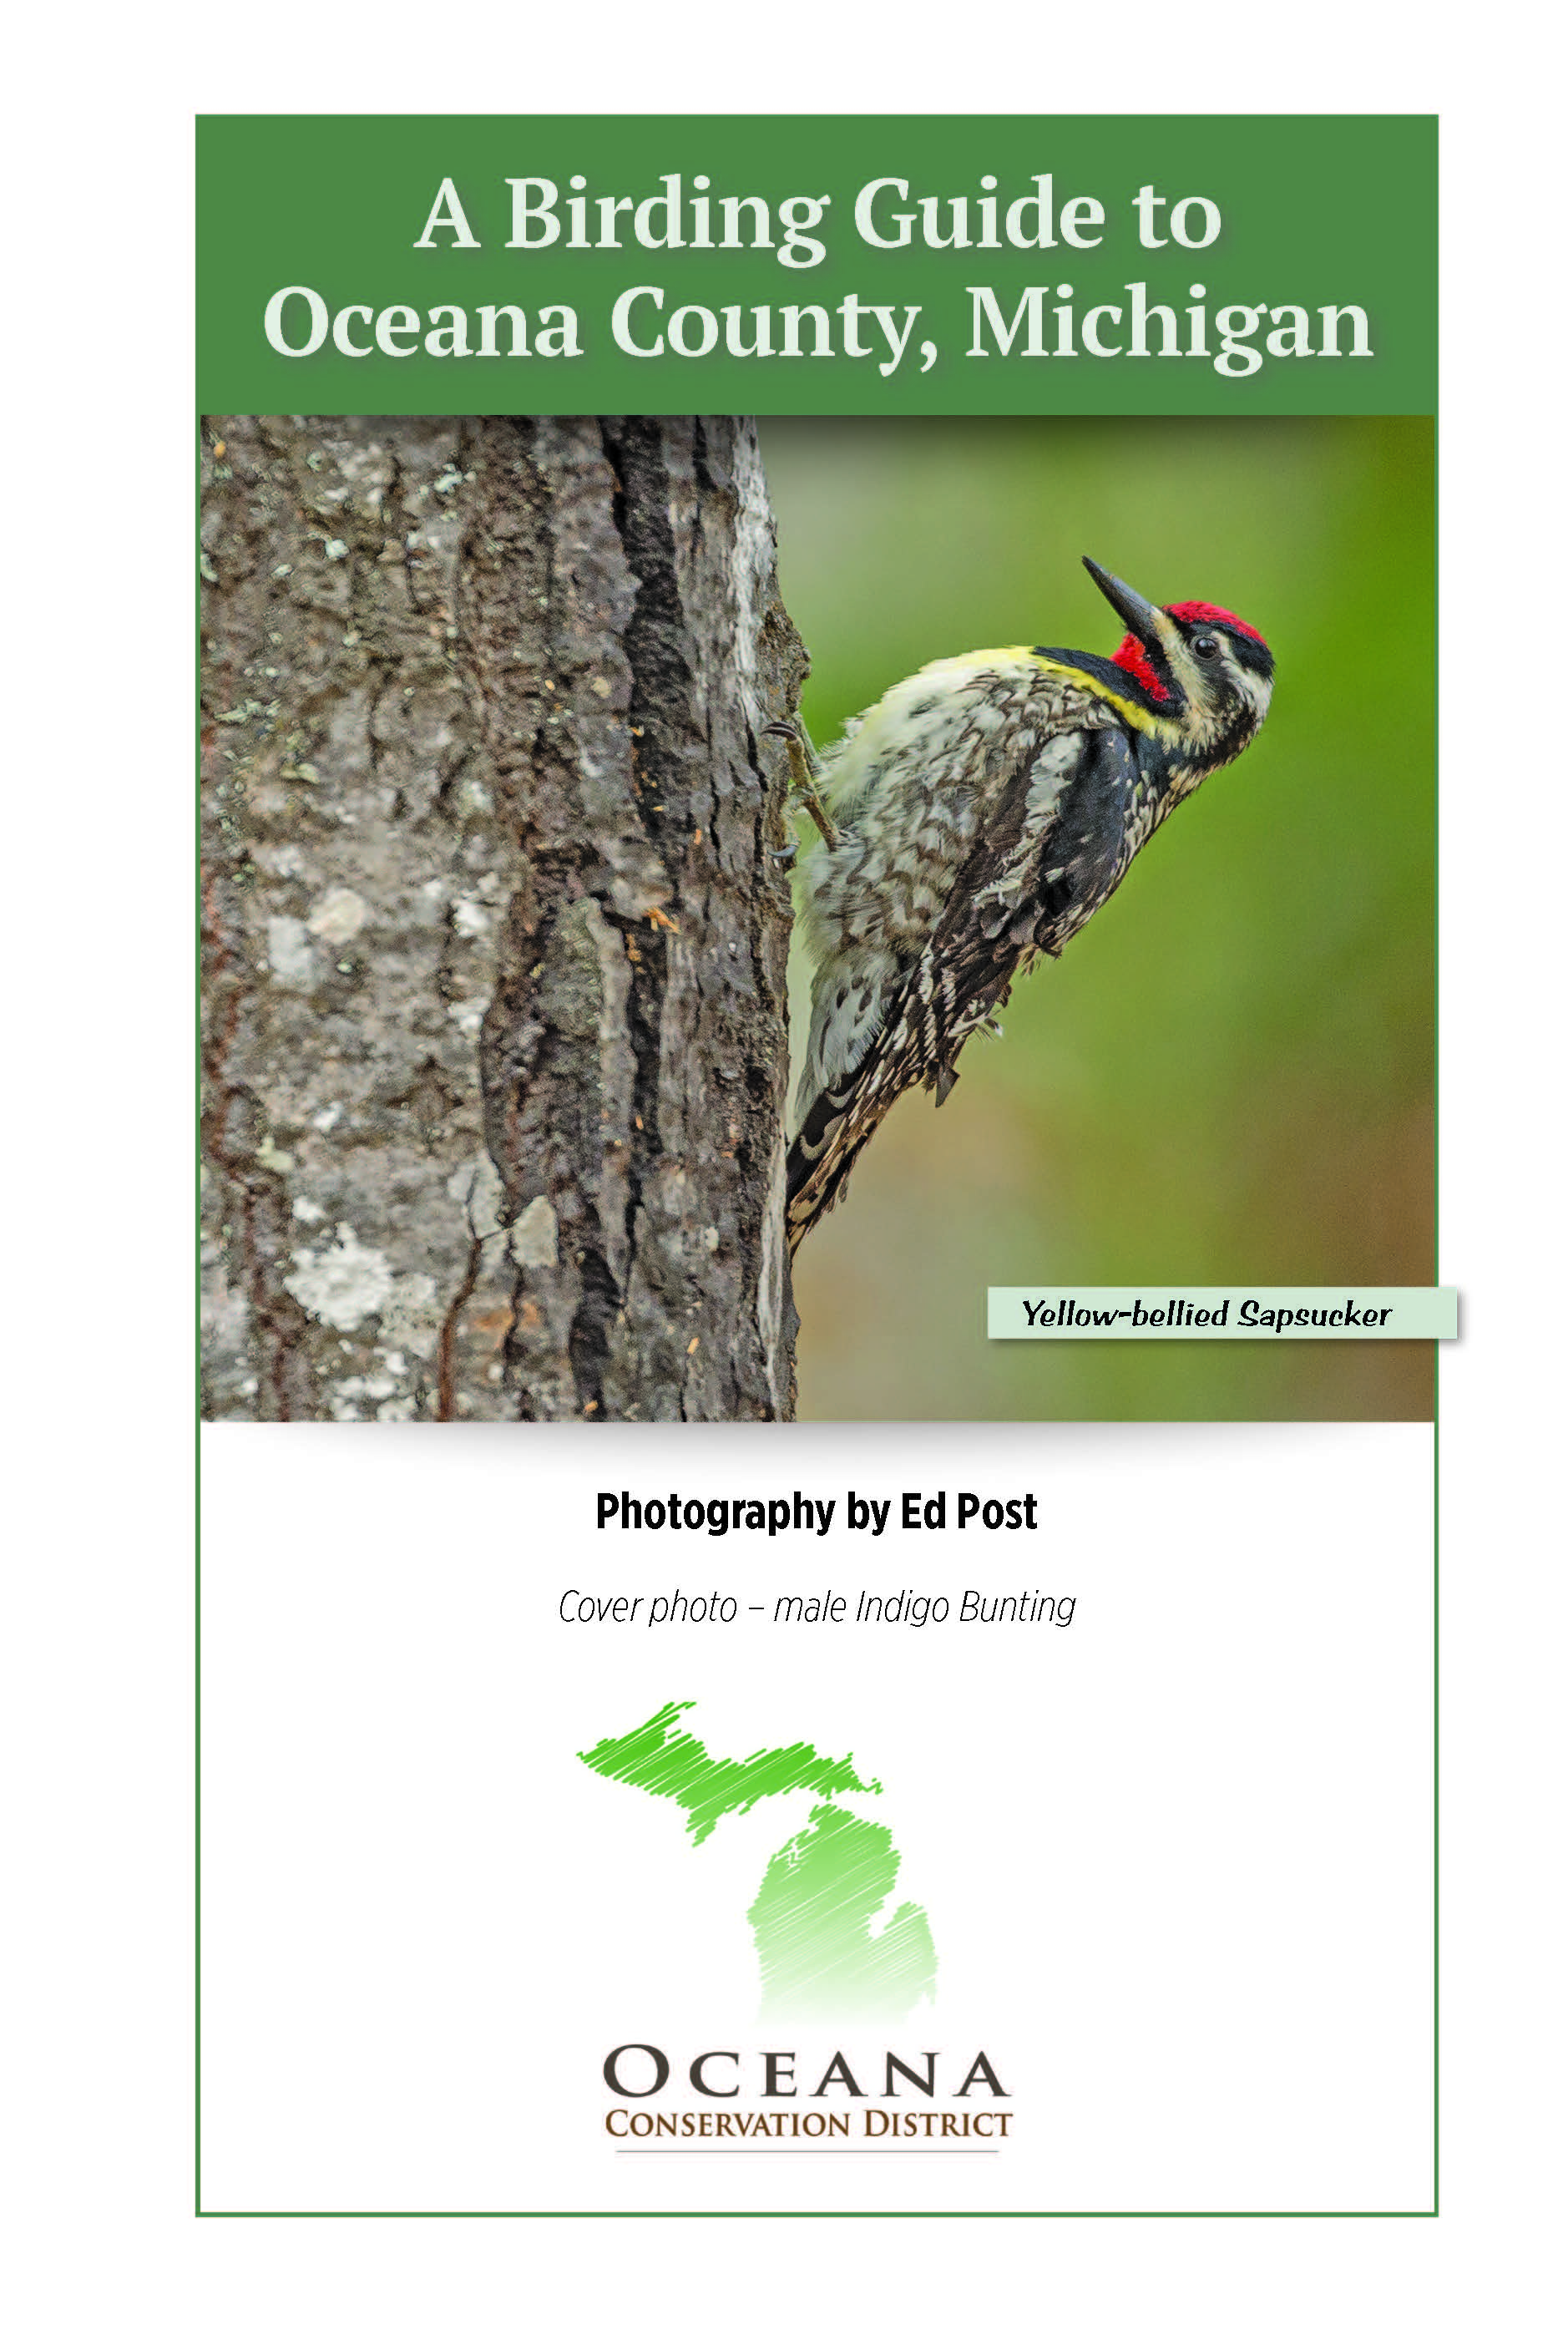 Birding Guide to OC_FINAL_Page_002.jpg